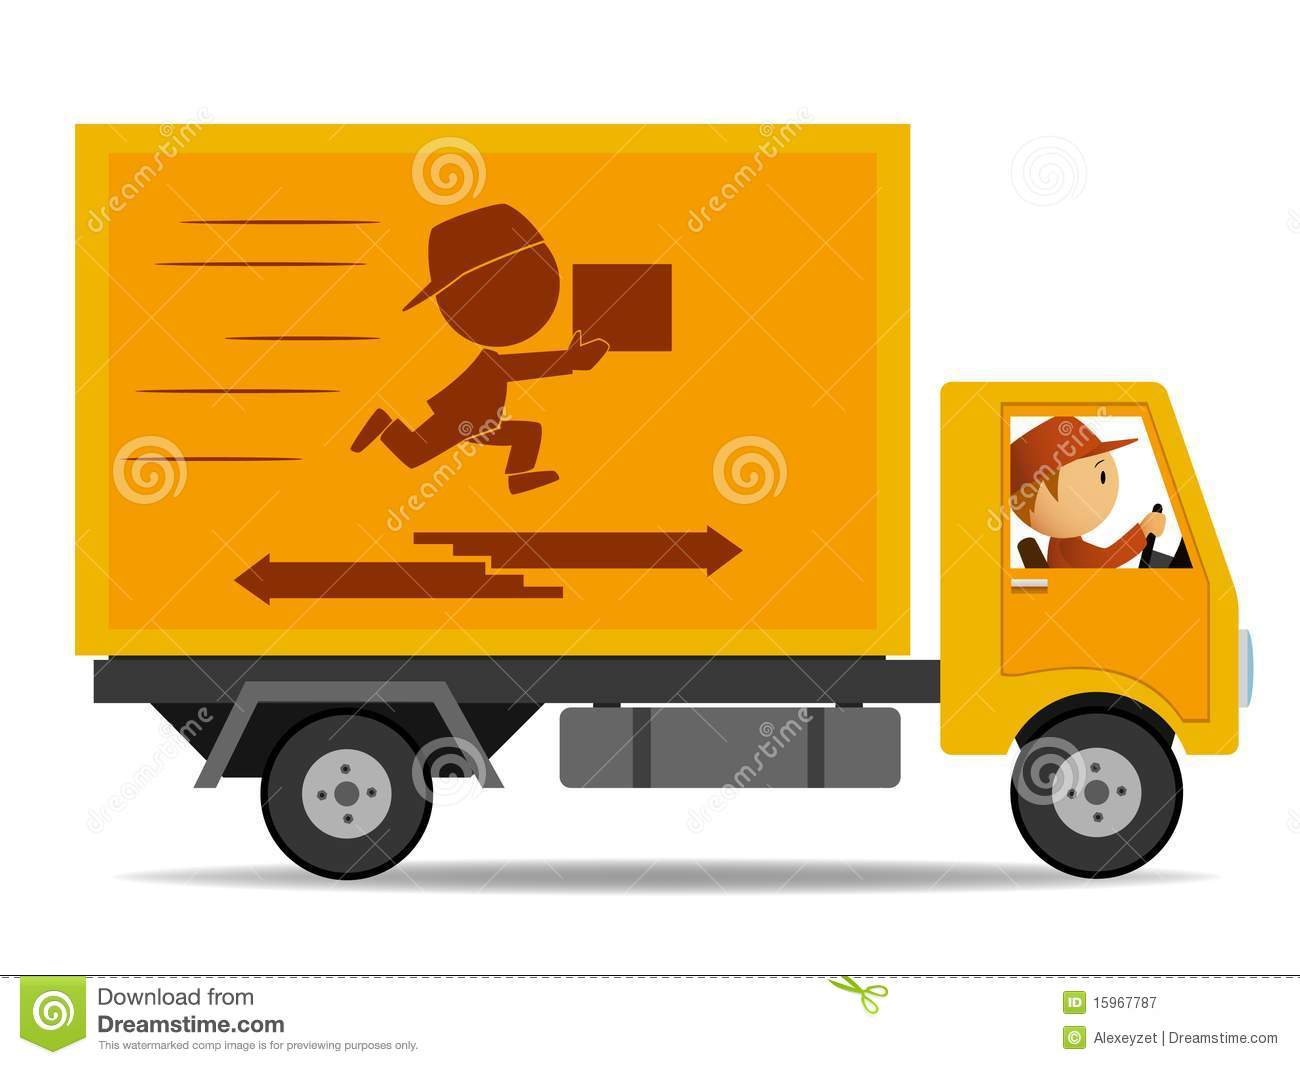 delivery driver clip art - photo #14